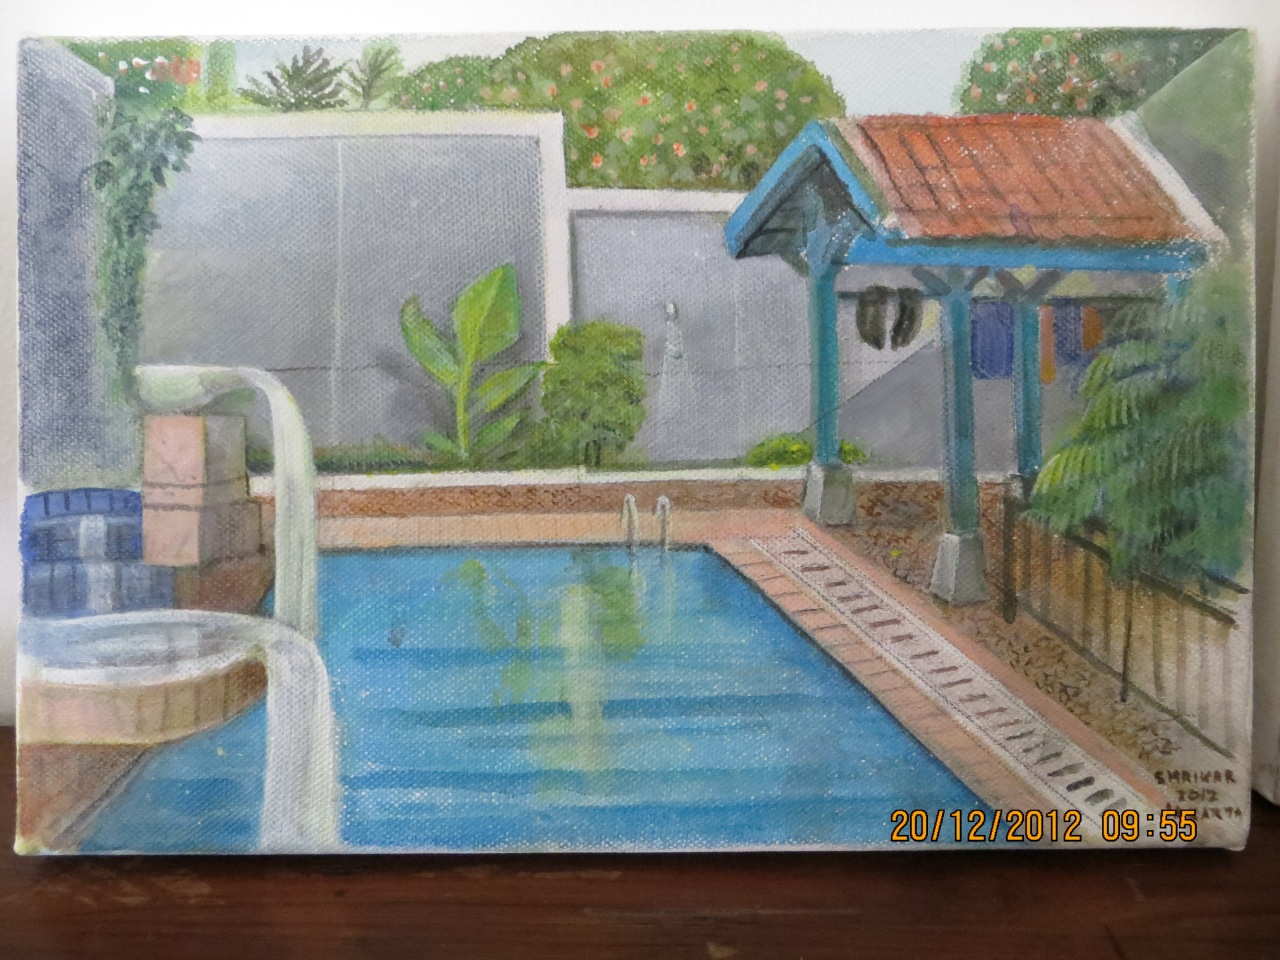 Baba's painting of our pool